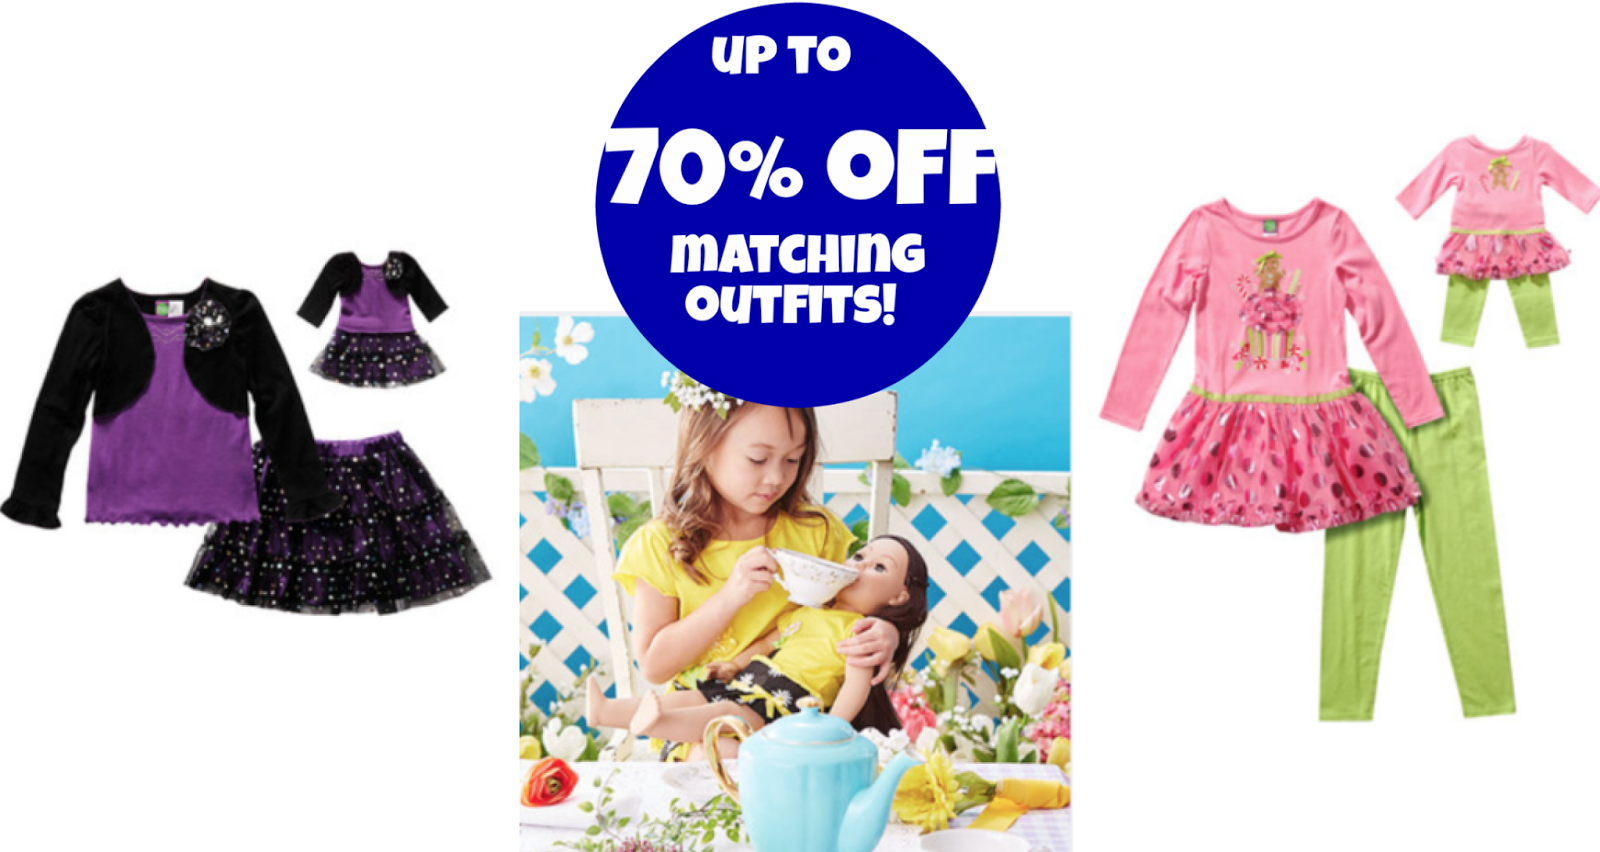 http://www.thebinderladies.com/2015/01/zulily-up-to-70-off-dollie-me-matching.html#.VLAFlYfduyM